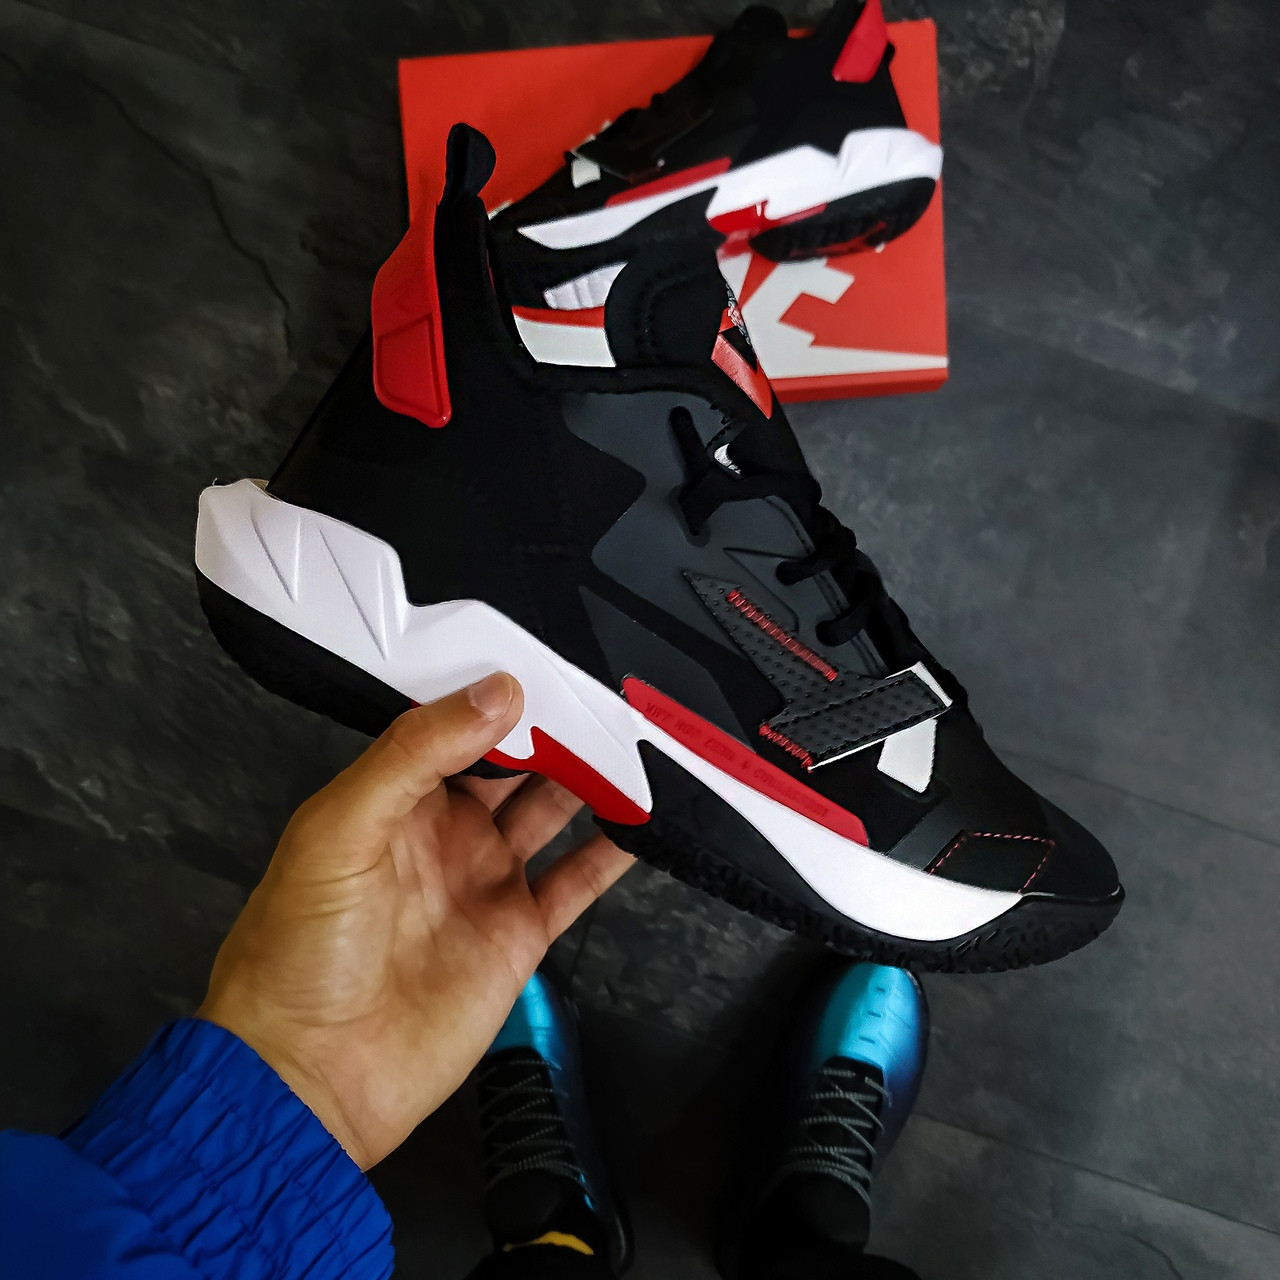 Кросівки Nike Why not Zero 4 black-red